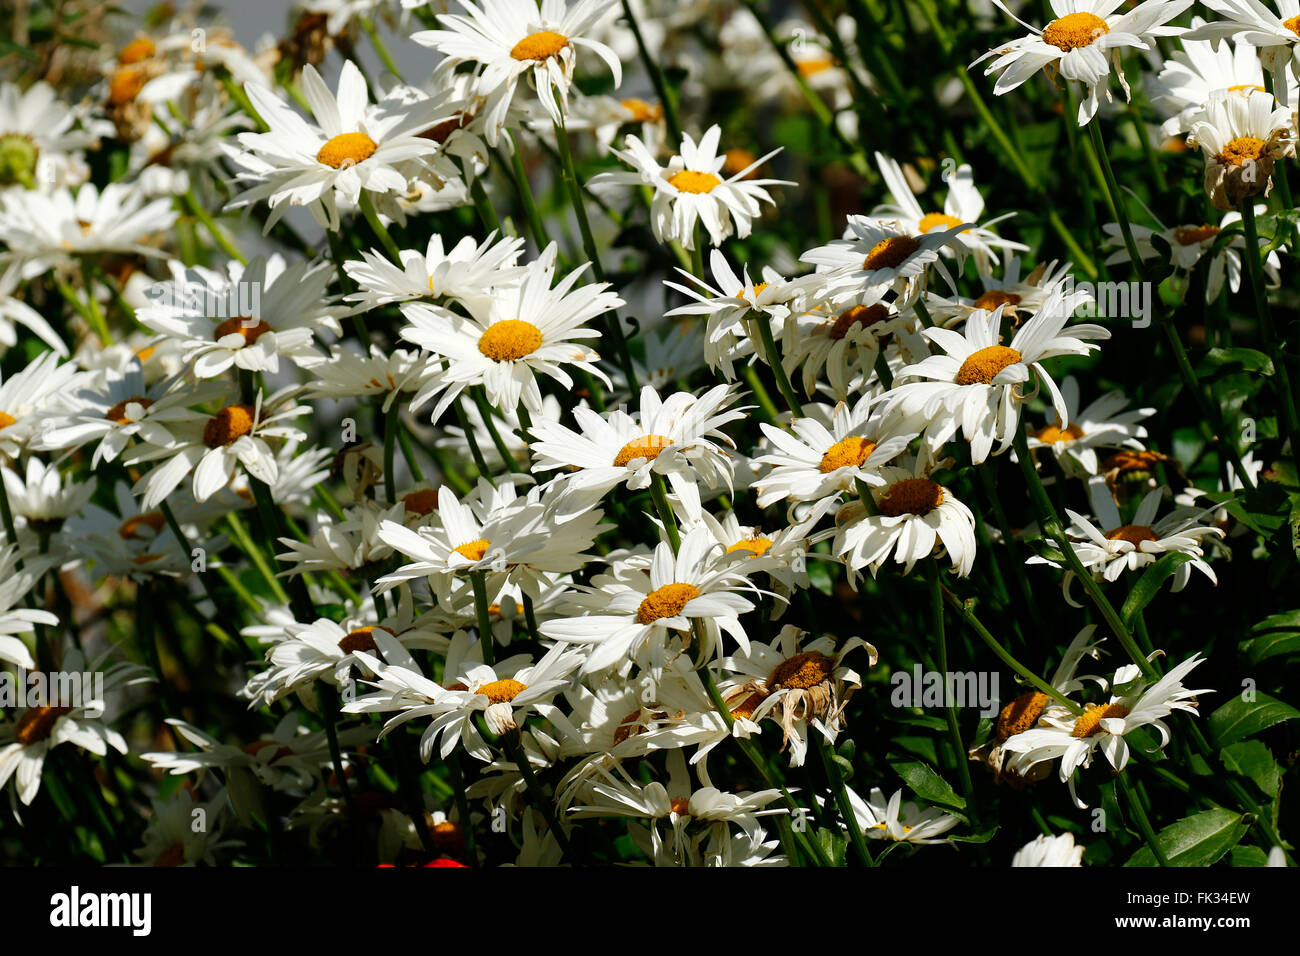 Shasta daisies have white petals with a bright yellow centre long shasta daisies have white petals with a bright yellow centre long stems they are a common feature in british gardens mightylinksfo